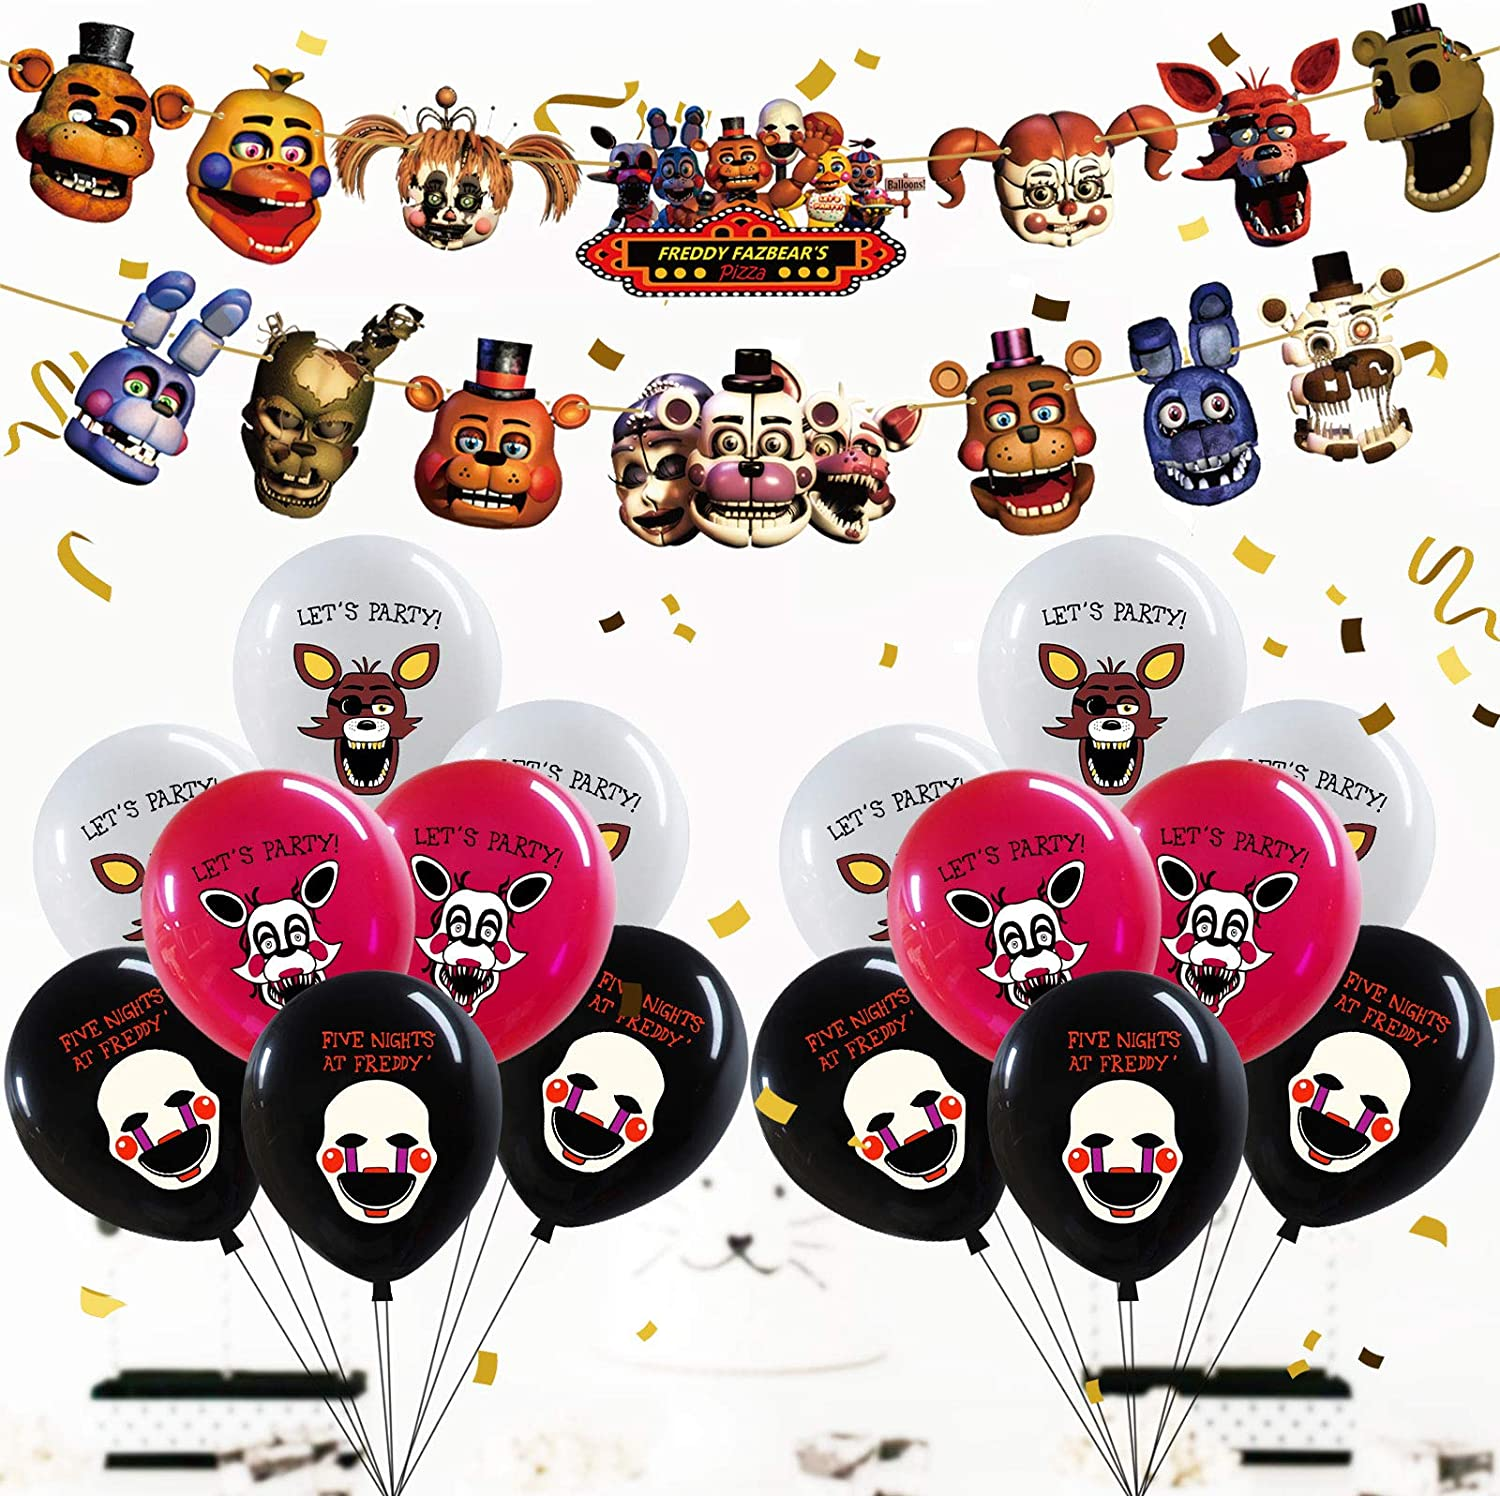 """Five Night At Freddy Happy Birthday Party Banner (Pre-assembled) Party Balloon 12"""" 18Pack – Five Night At Freddy Theme Party Supplies Decorations for Kids Girls Wall Door Outdoor Indoor Décor"""